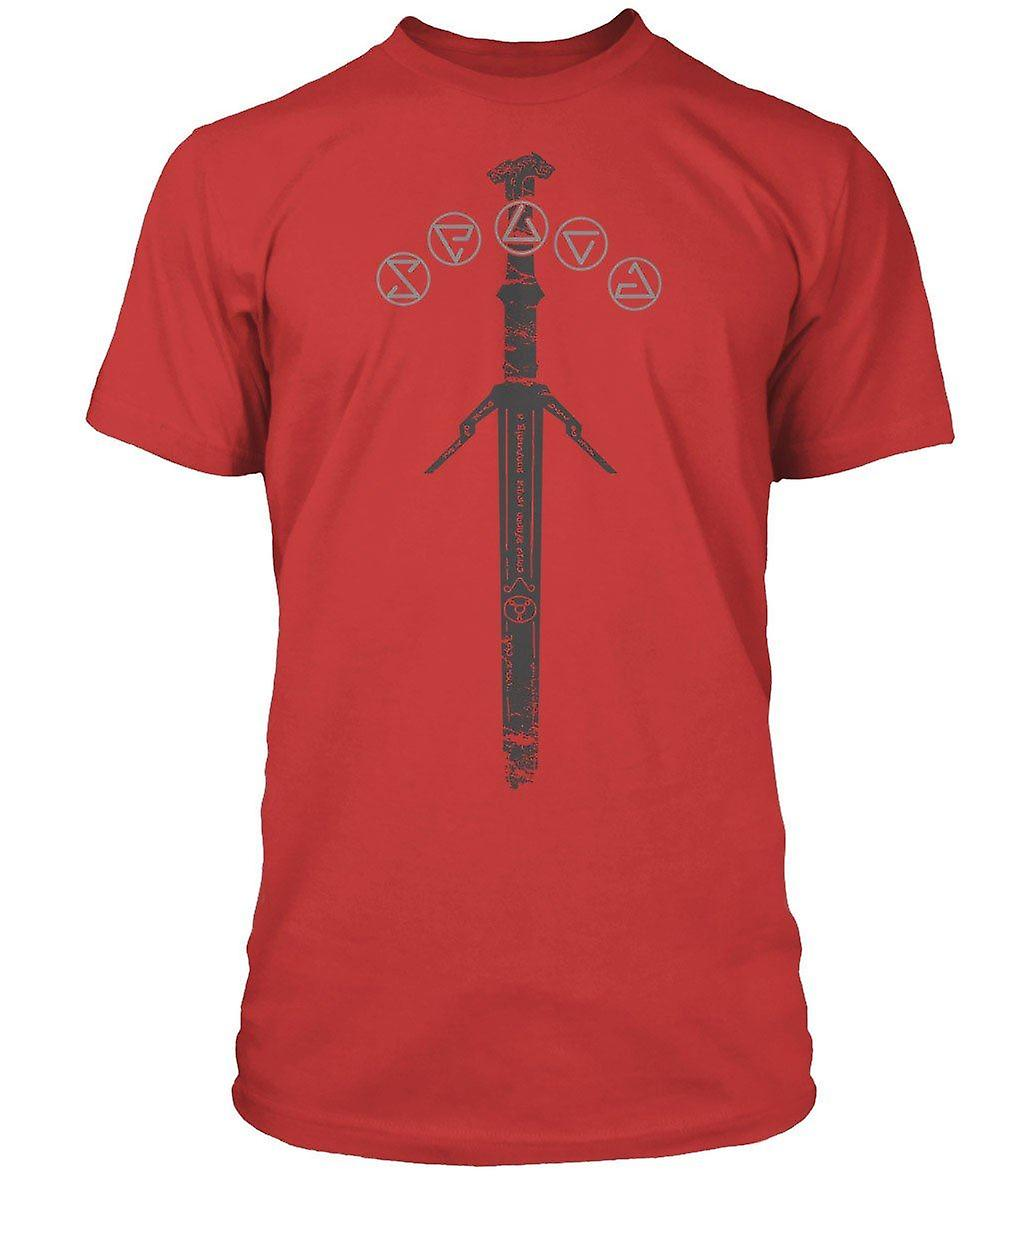 The Witcher 3 Silver Sword Premium Tee EXTRA LARGE